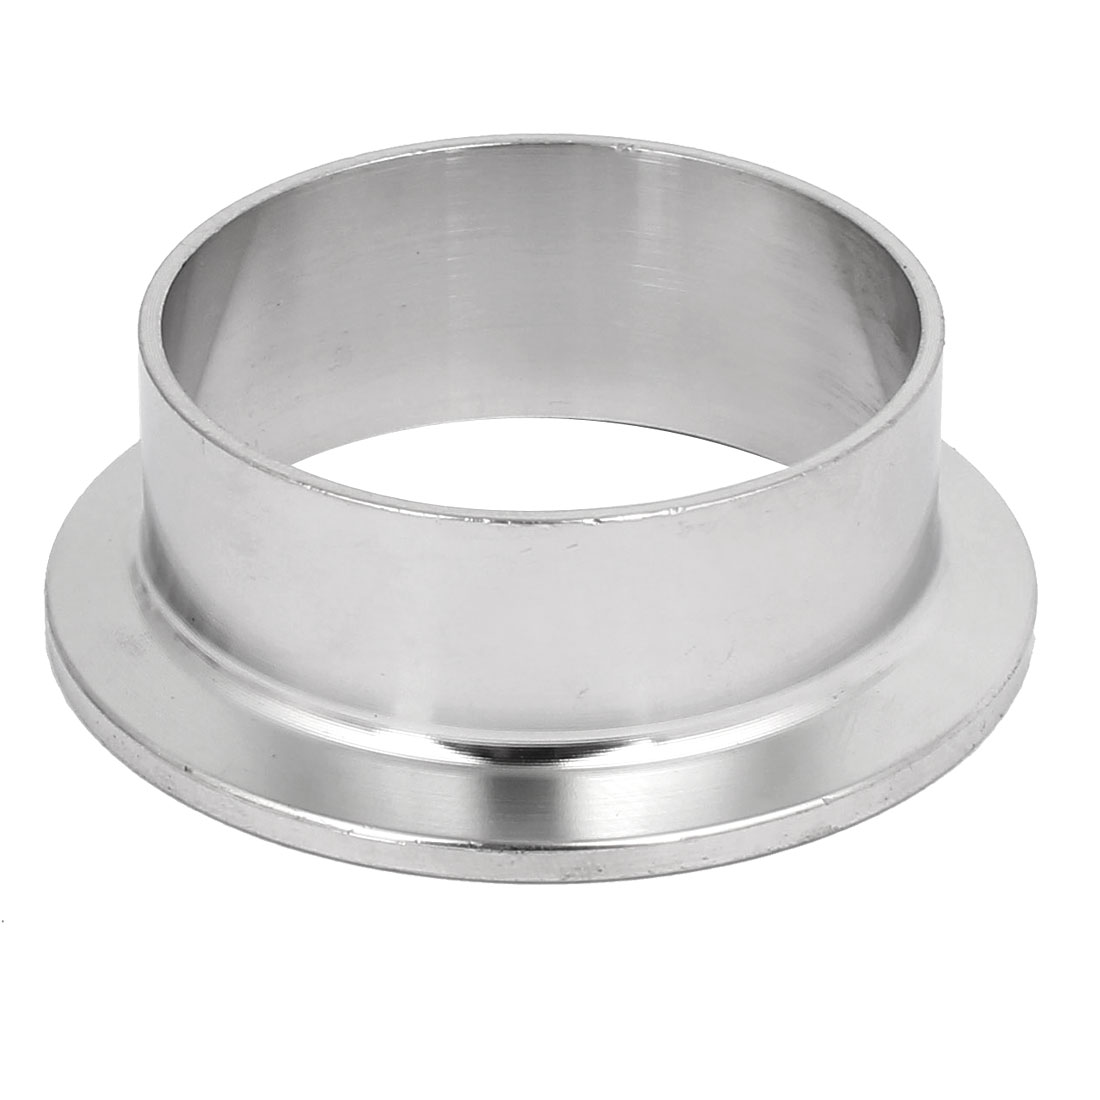 304 Stainless Steel 51mm OD Sanitary Pipe Weld on Ferrule Fits 2 Tri Clamp 1 set 8 219mm od sanitary pipe weld ferrule tri clamp silicone gasket stainless steel ss304 swt 219